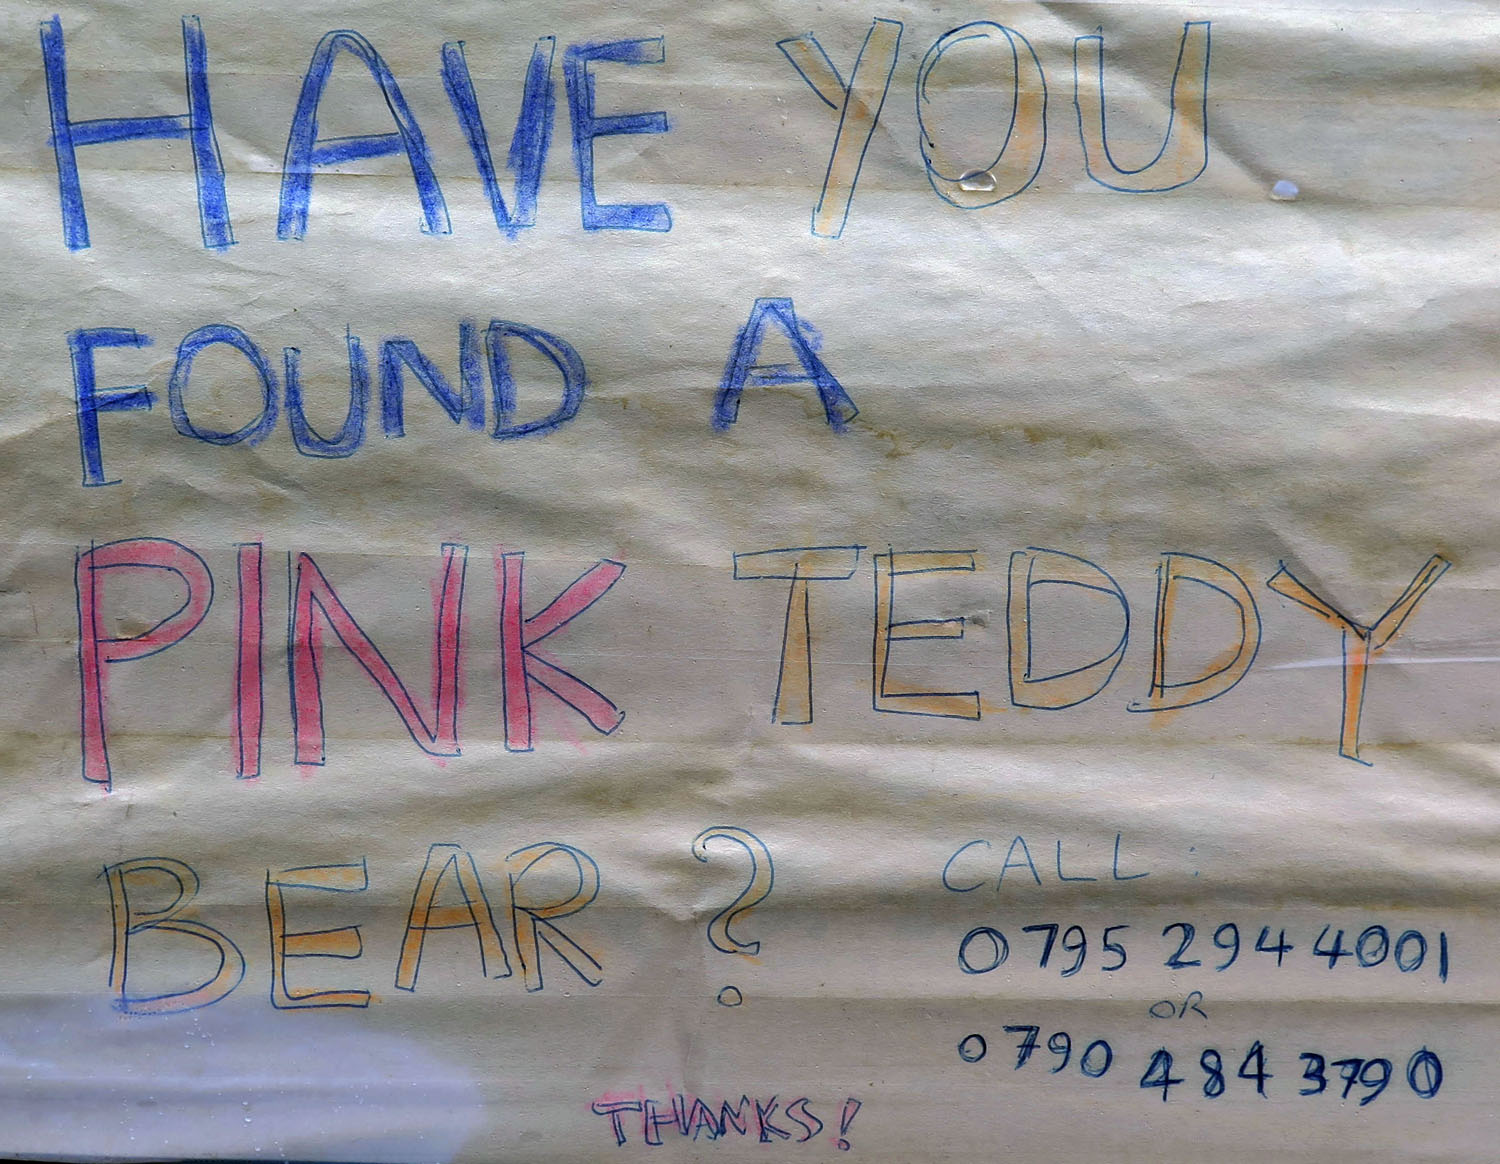 Scotland-Highlands-Luss-Pink-Teddy-Bear